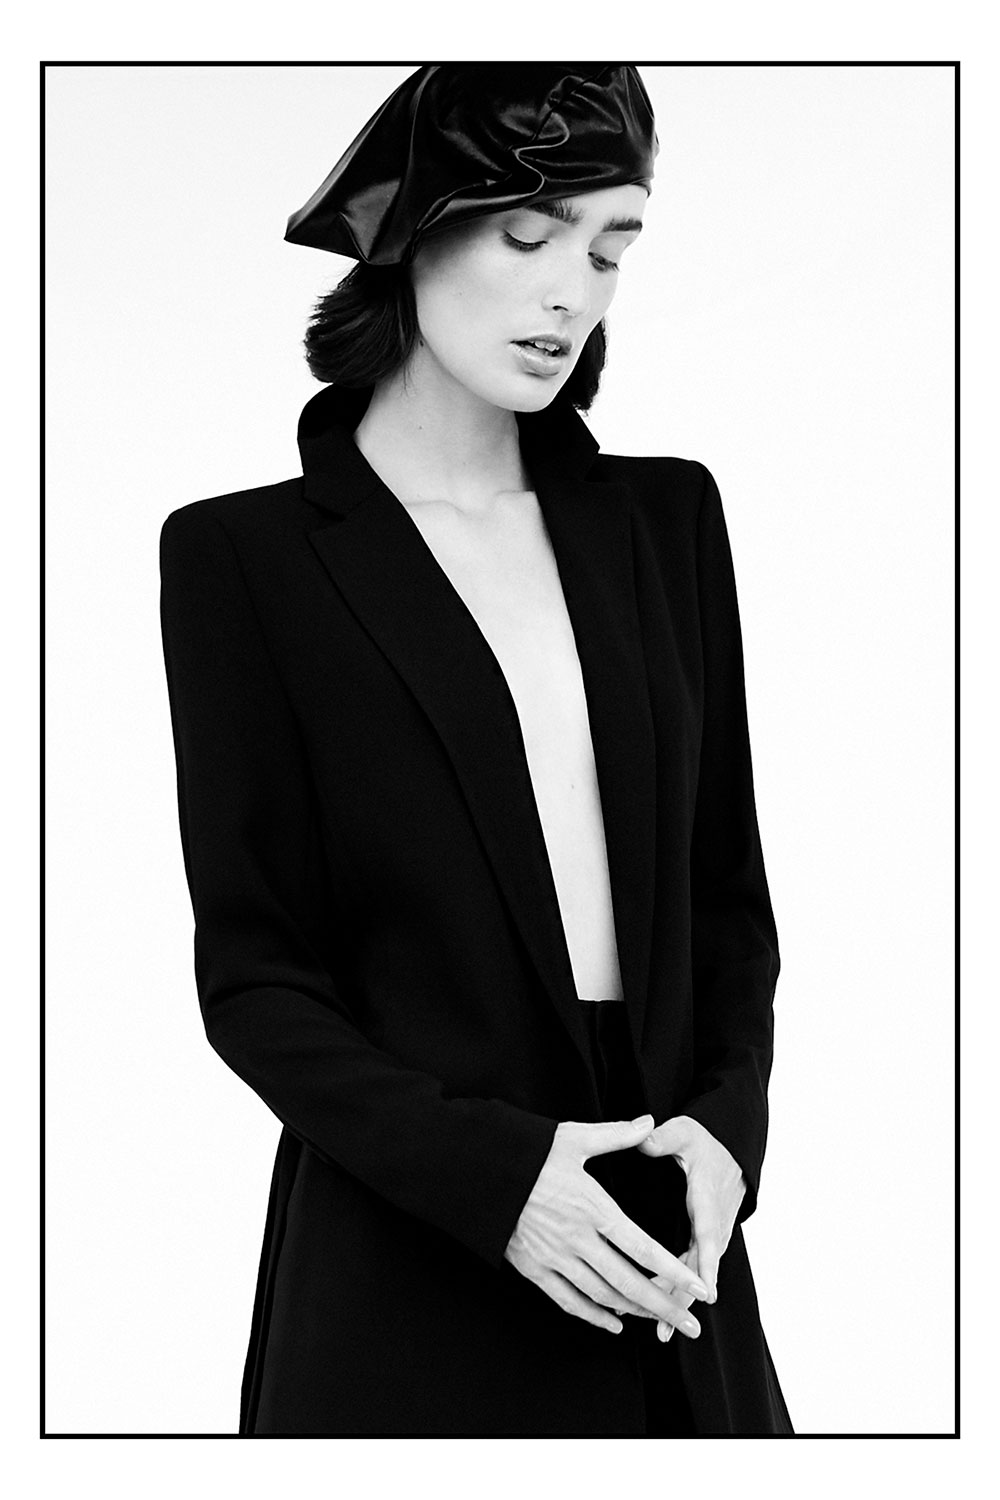 Photo of model Marizanne Visser by Maddy Grace O for MONROWE Magazine